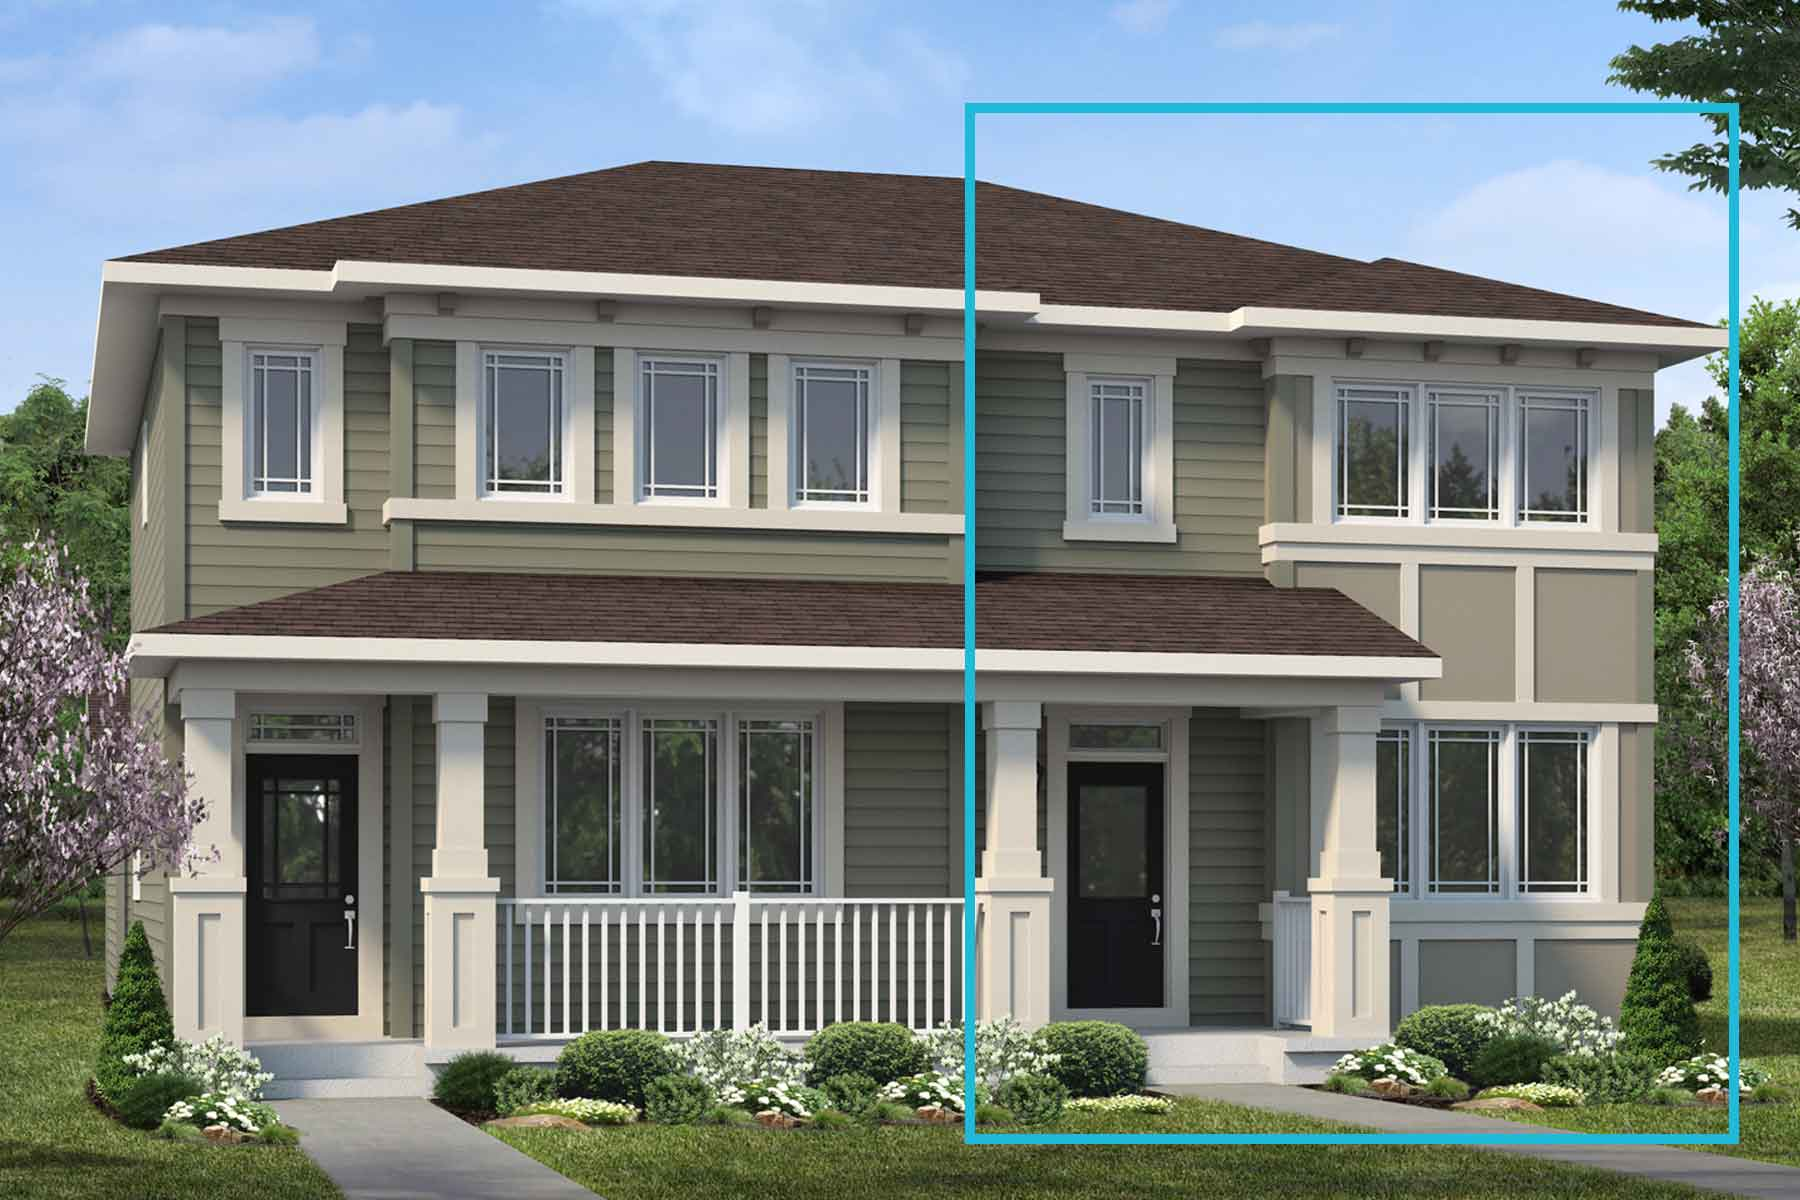 Raymond End Plan elevationprairie_carrington_palliser at Stillwater in Edmonton Alberta by Mattamy Homes